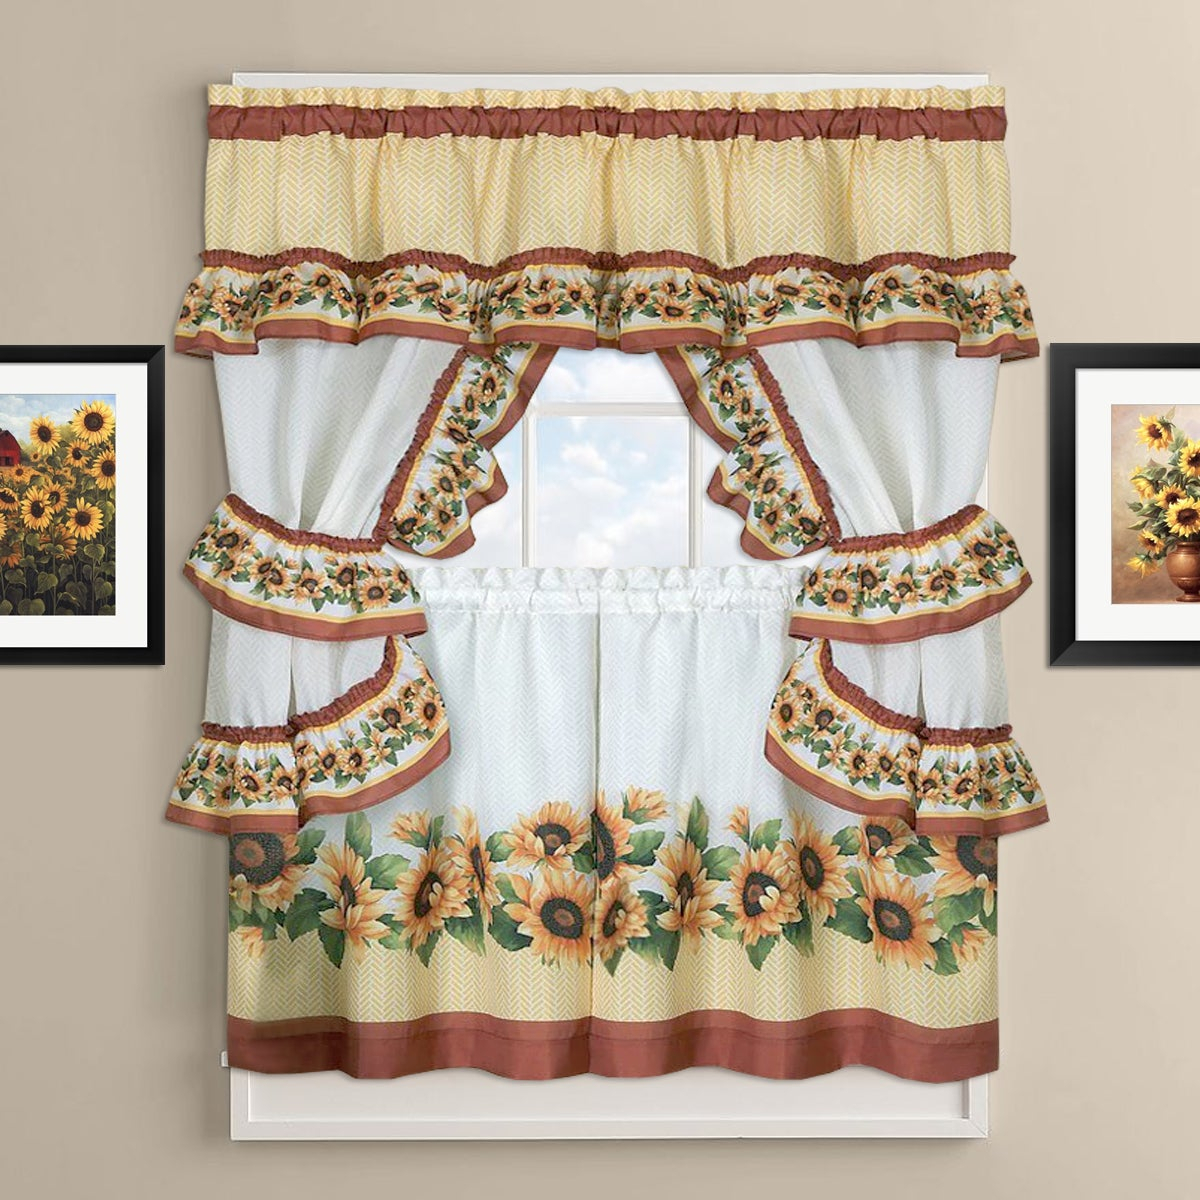 Sunflower Cottage Kitchen Curtain Tier And Valance Set Within Window Curtains Sets With Colorful Marketplace Vegetable And Sunflower Print (View 7 of 20)